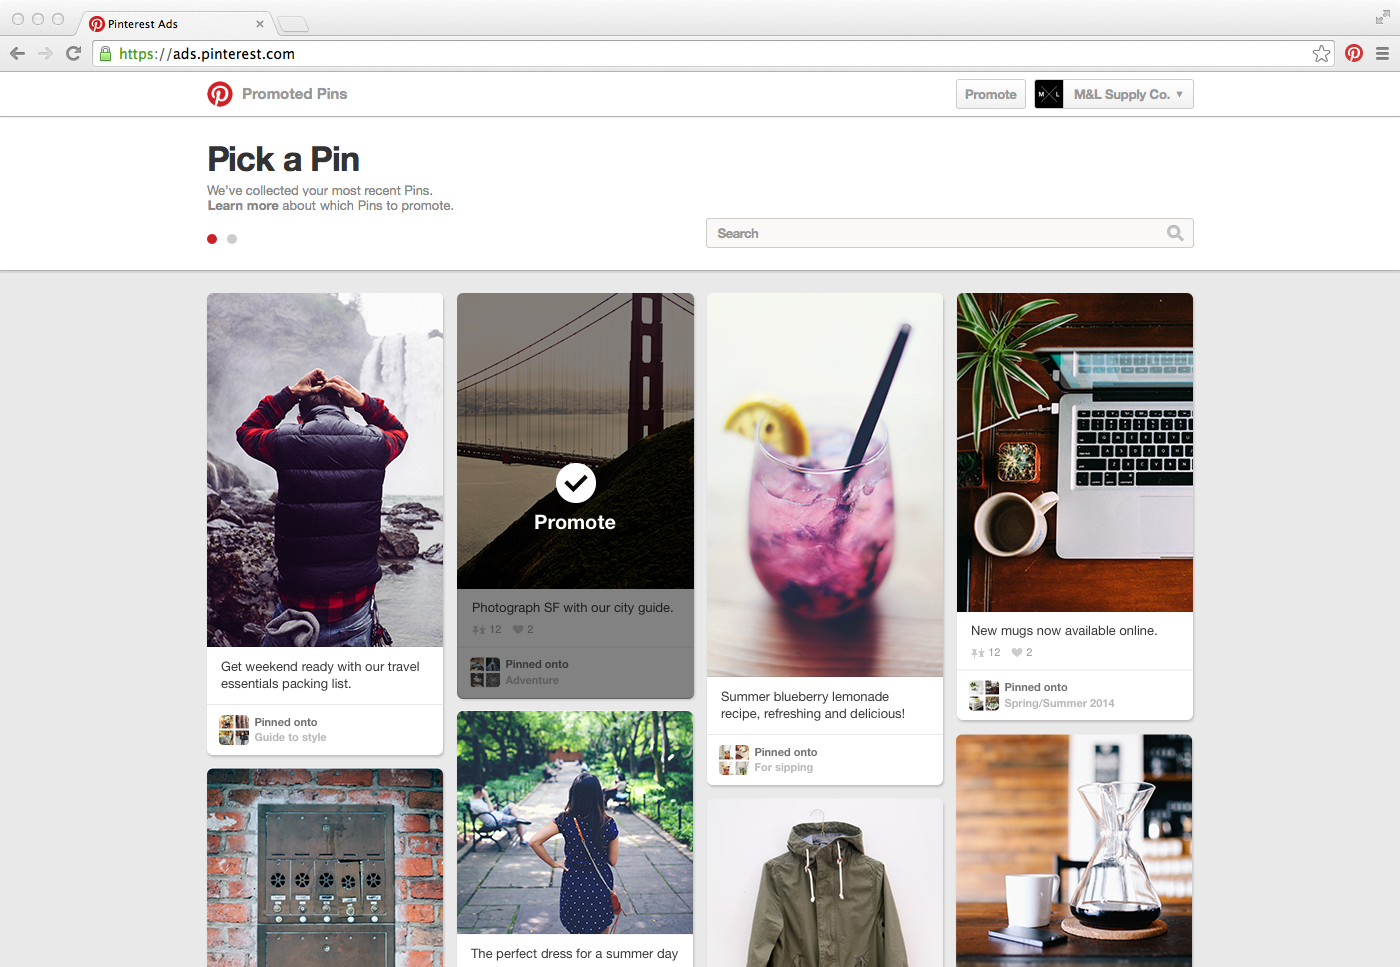 Pinterest Announces Self-Serve Promoted Pins